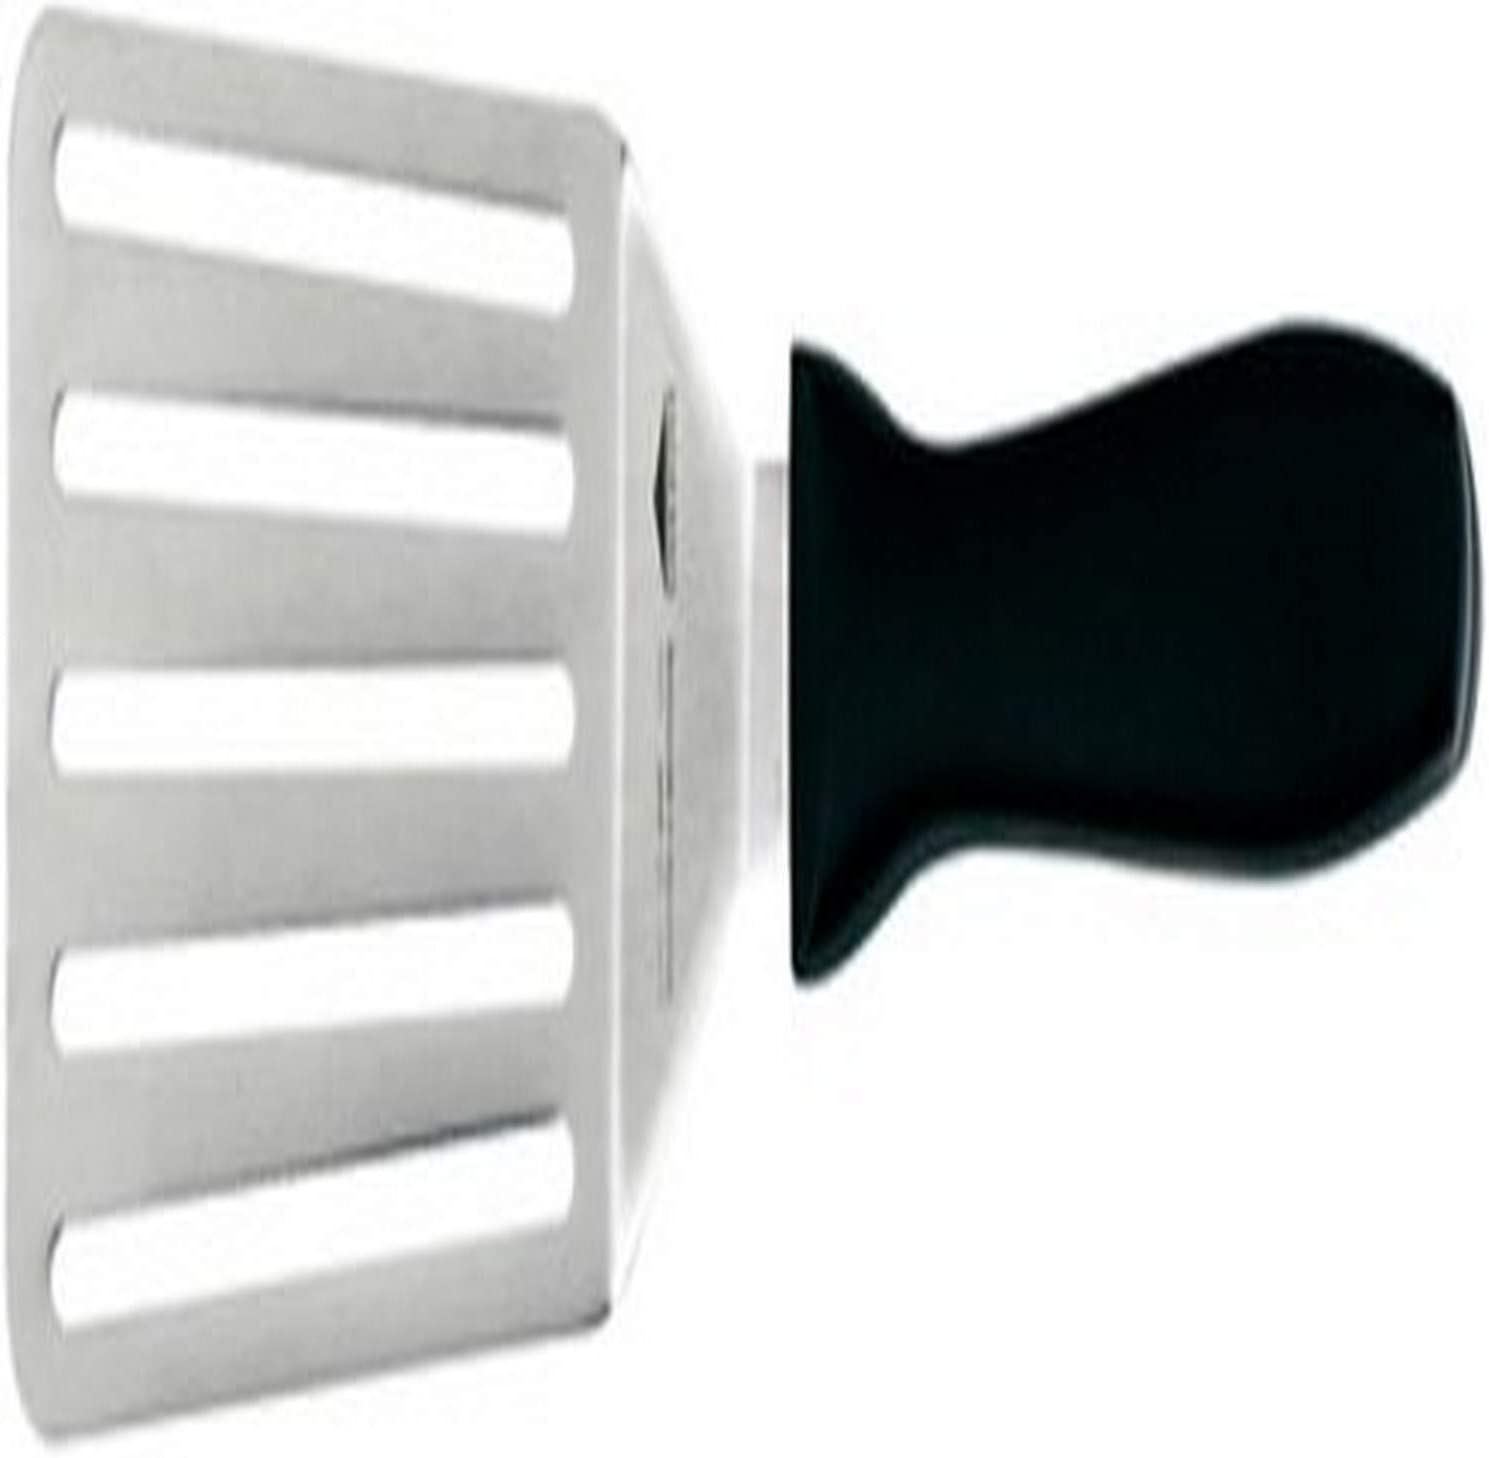 Paderno World Cuisine stainless steel slotted spatula 2 width 2 width 18509-02